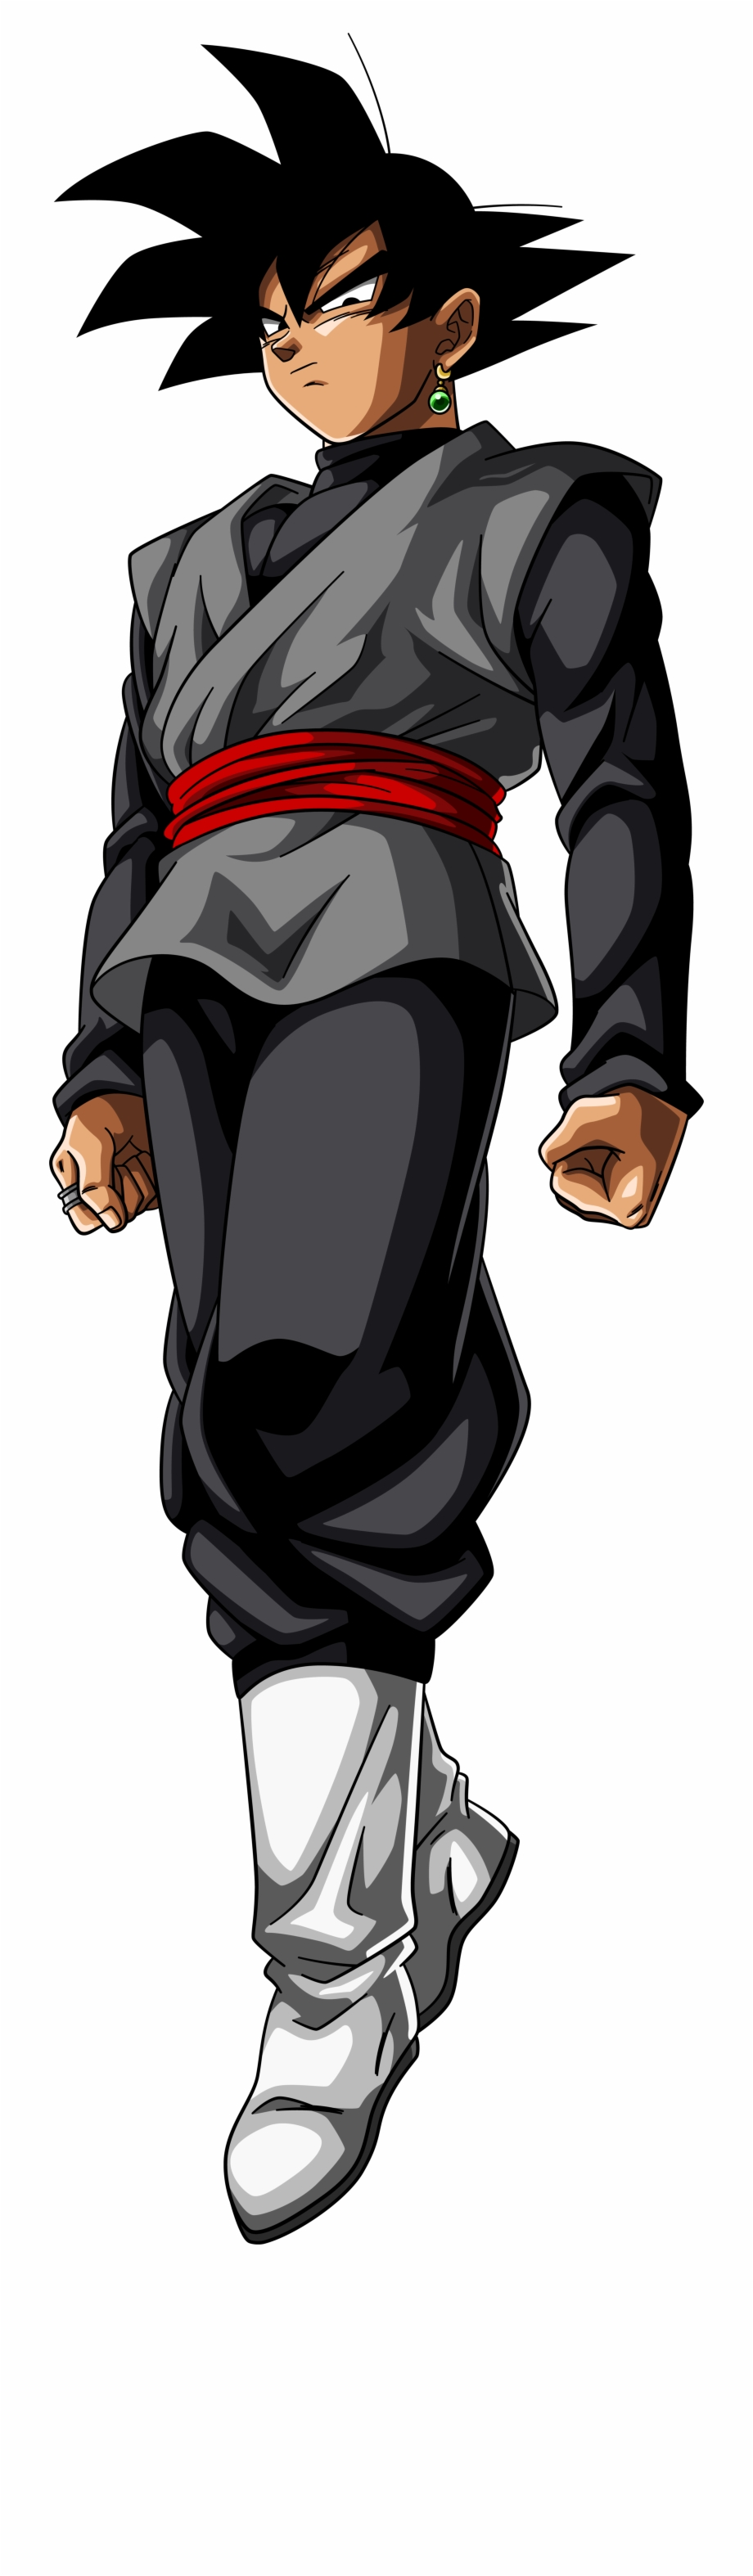 Goku Black V3 Card Dokkan Battle Jap Transparent Png Download 2840023 Vippng I just watched the episode where garlic jr was introduces and i don't get who he is and how does he know kami and gohan can someone explain? goku black v3 card dokkan battle jap